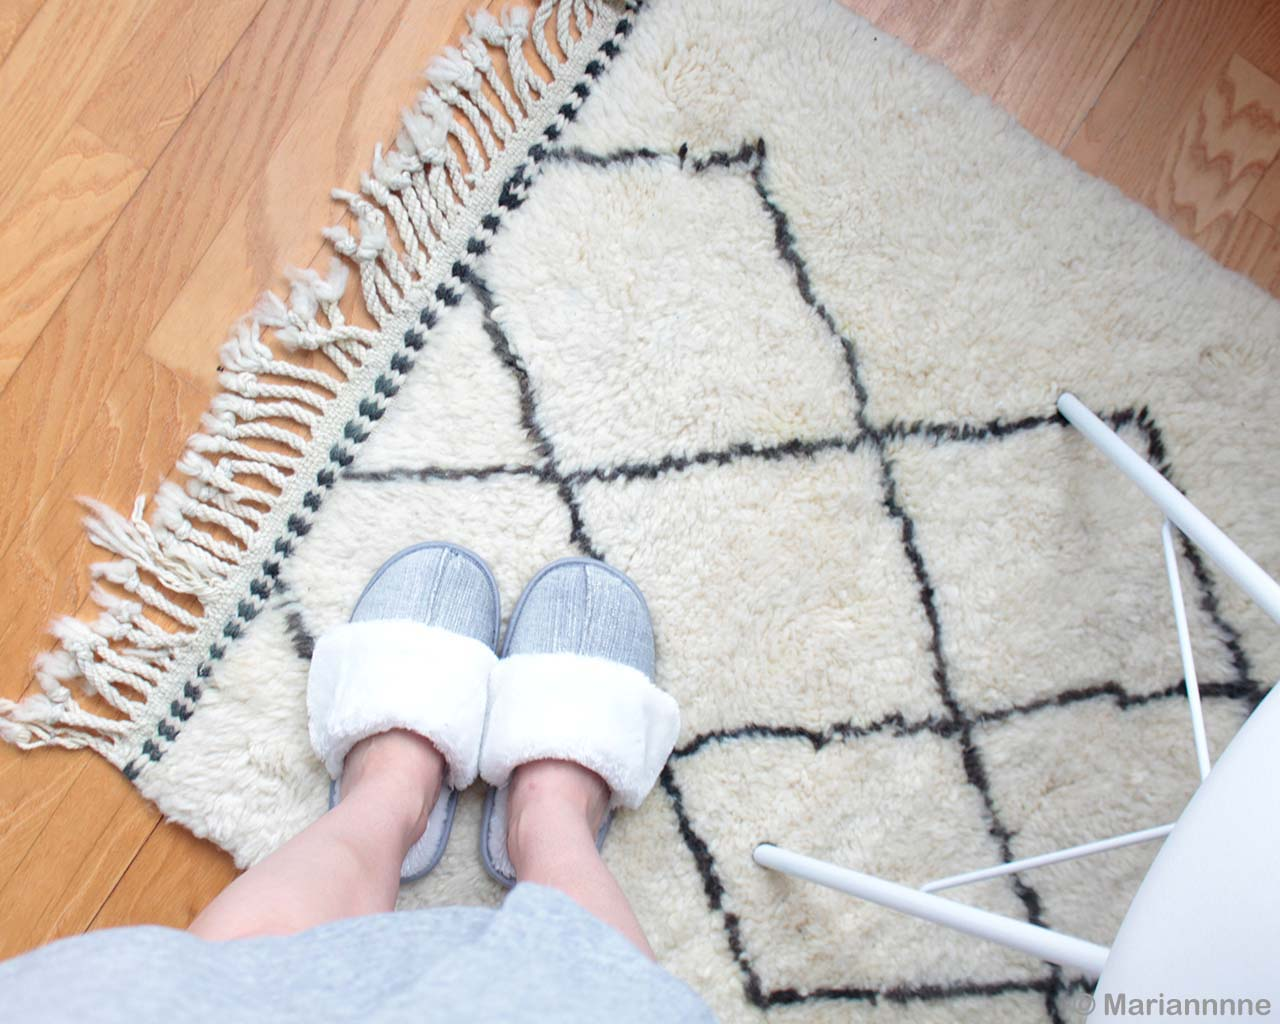 person wearing shoes made in morocco cream rugs